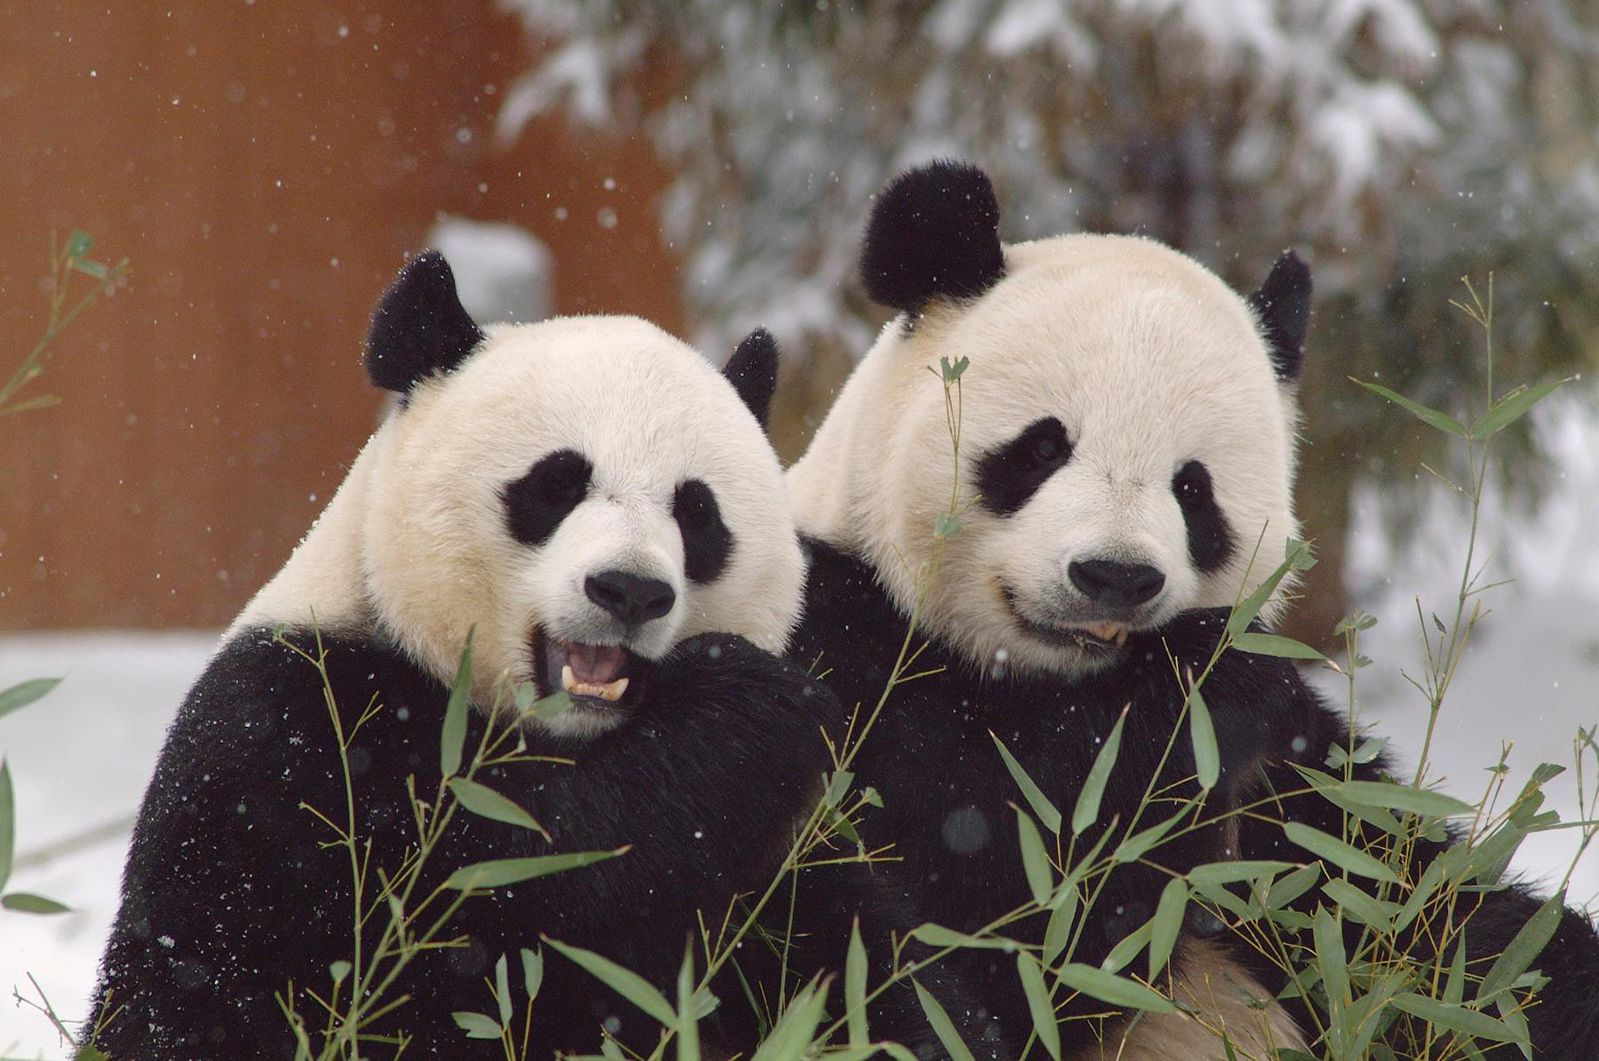 Smithsonian's Giant Pandas Will Continue to Cavort for Three More Years